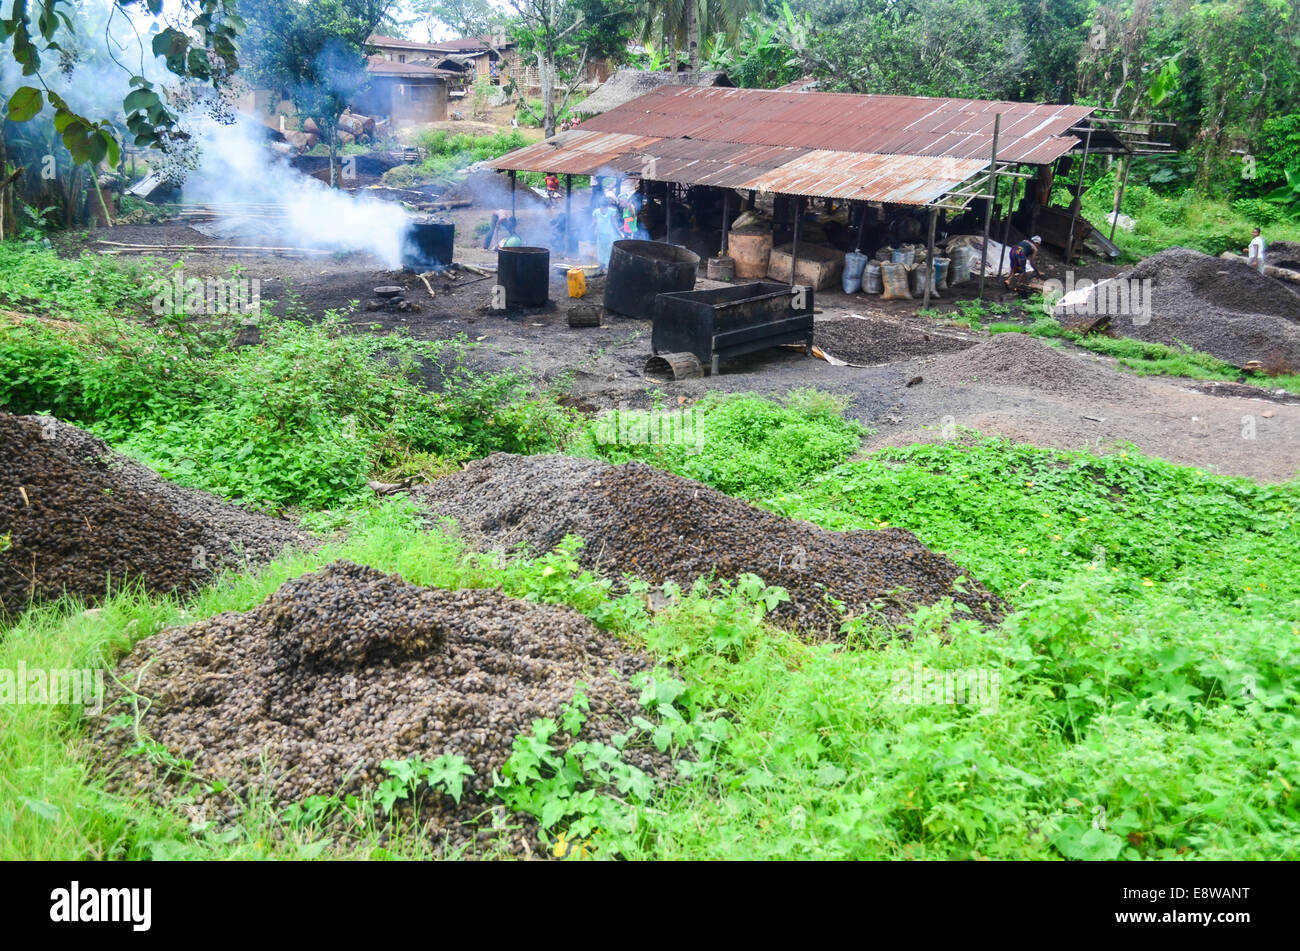 An artisanal palm oil factory in Nigeria - Stock Image